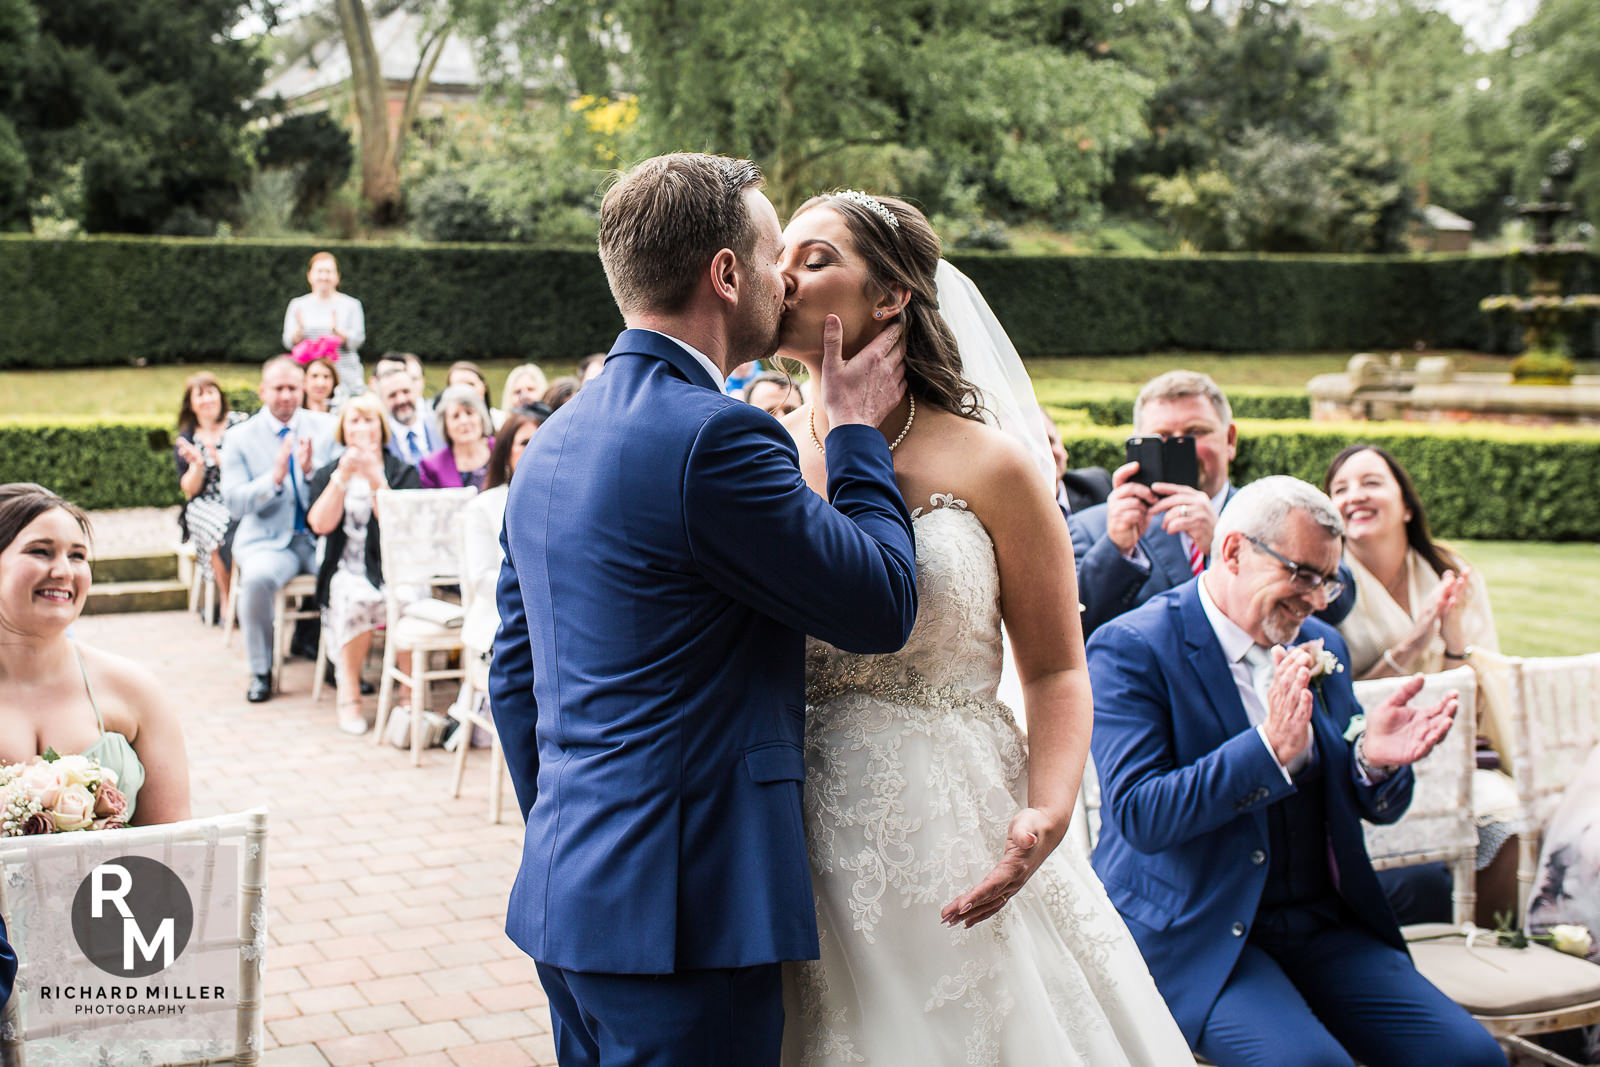 P R 19 - Pete & Roxy's Soughton Hall Outdoor Wedding